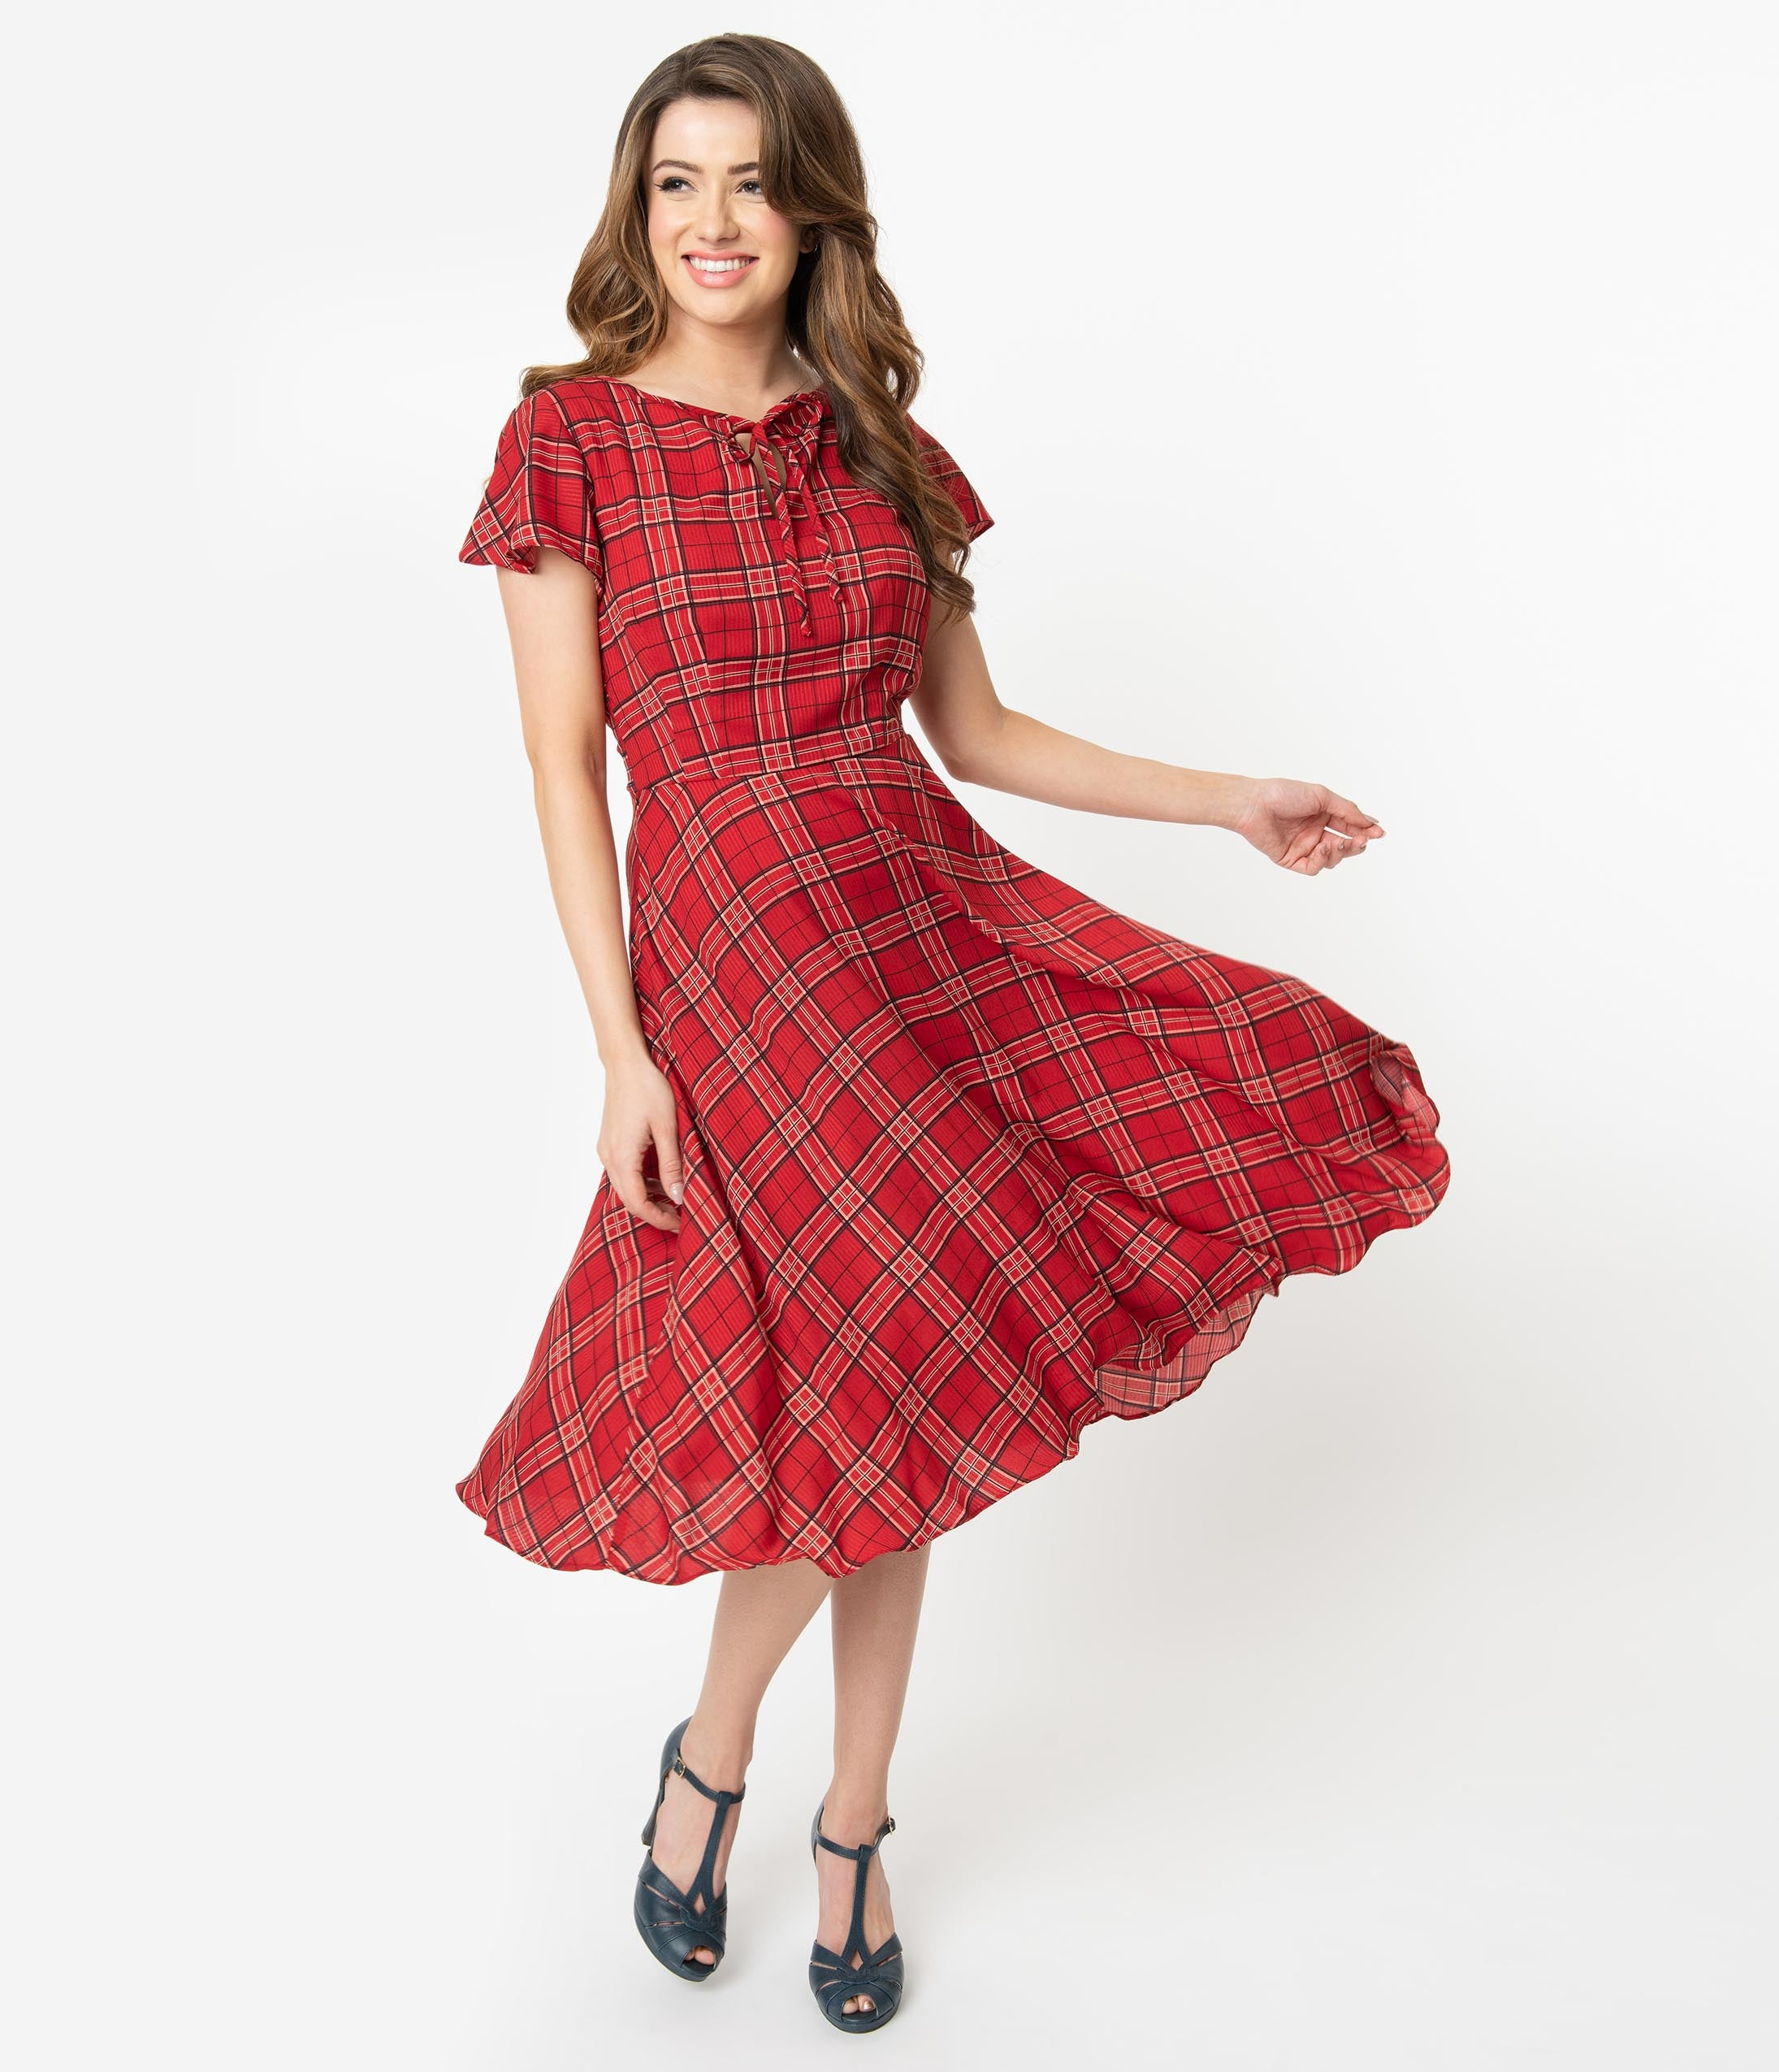 1940s Fashion Advice for Short Women Unique Vintage 1940S Style Red Plaid Formosa Swing Dress $88.00 AT vintagedancer.com